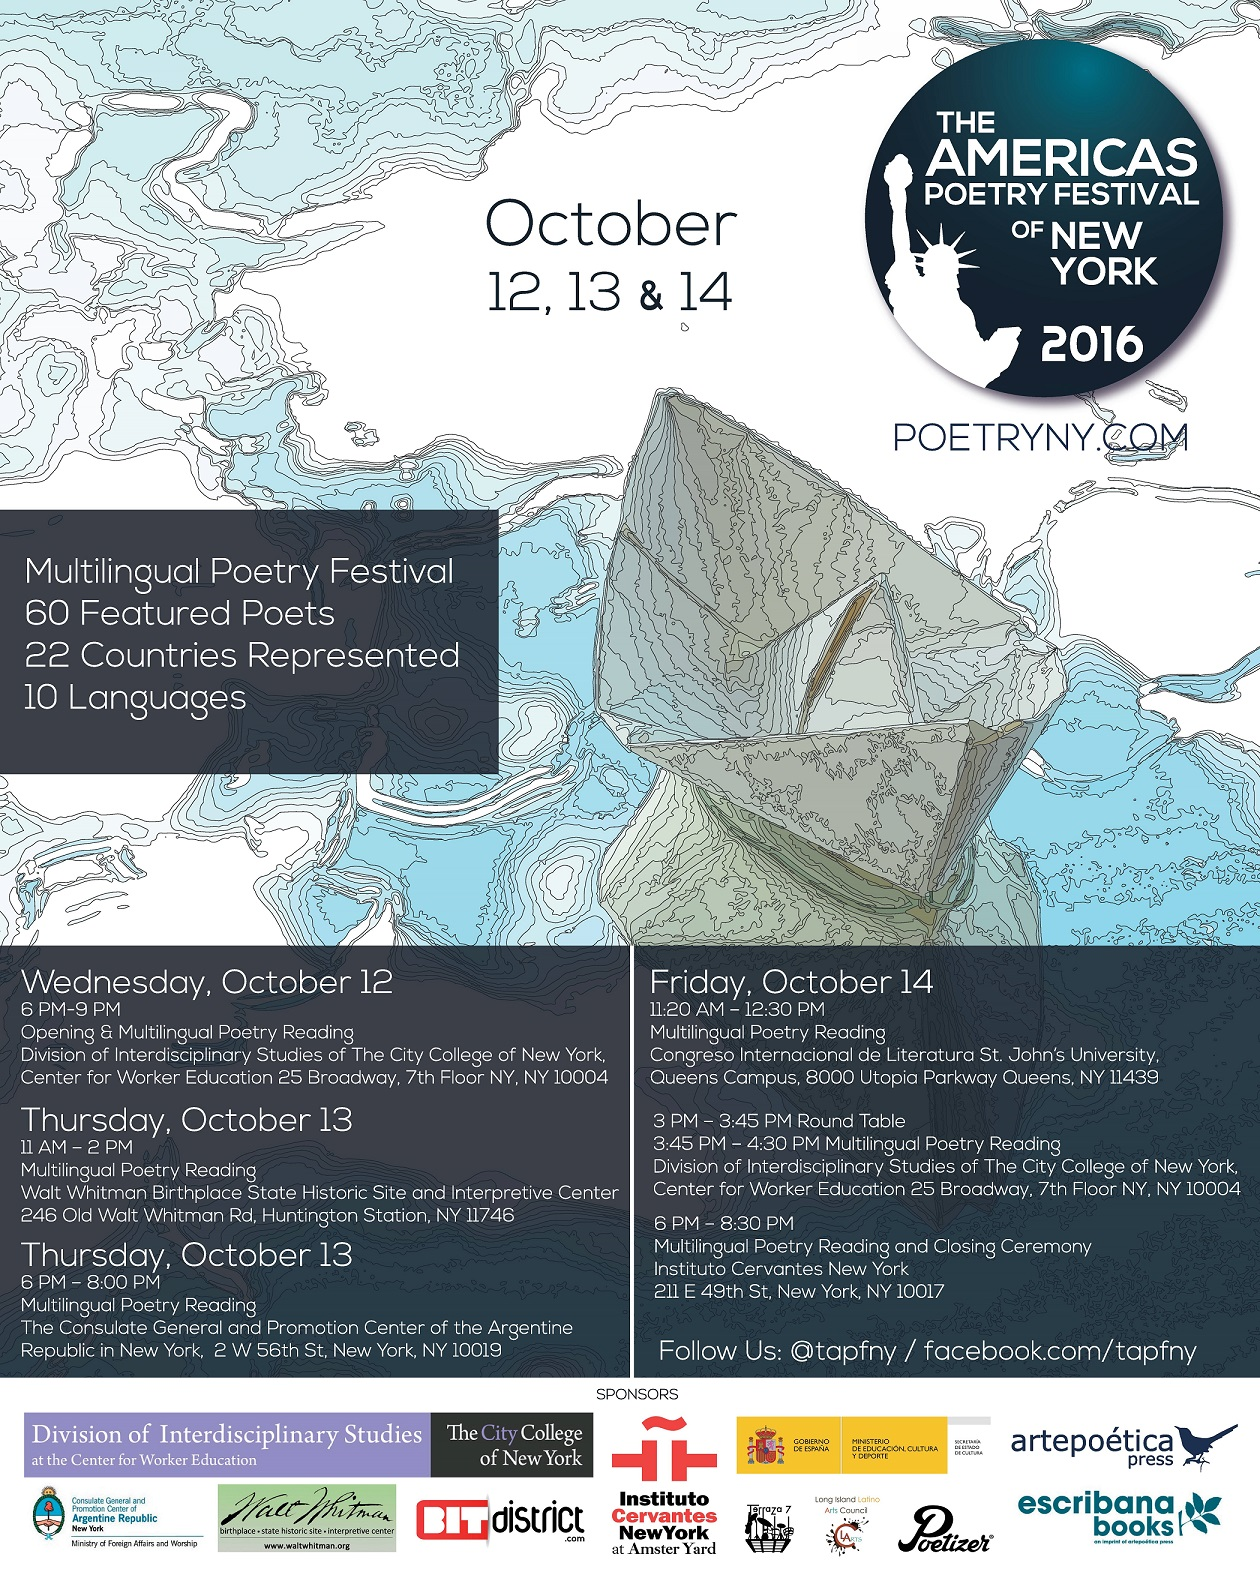 The Americas Poetry Festival of New York 2016 Poster and Program